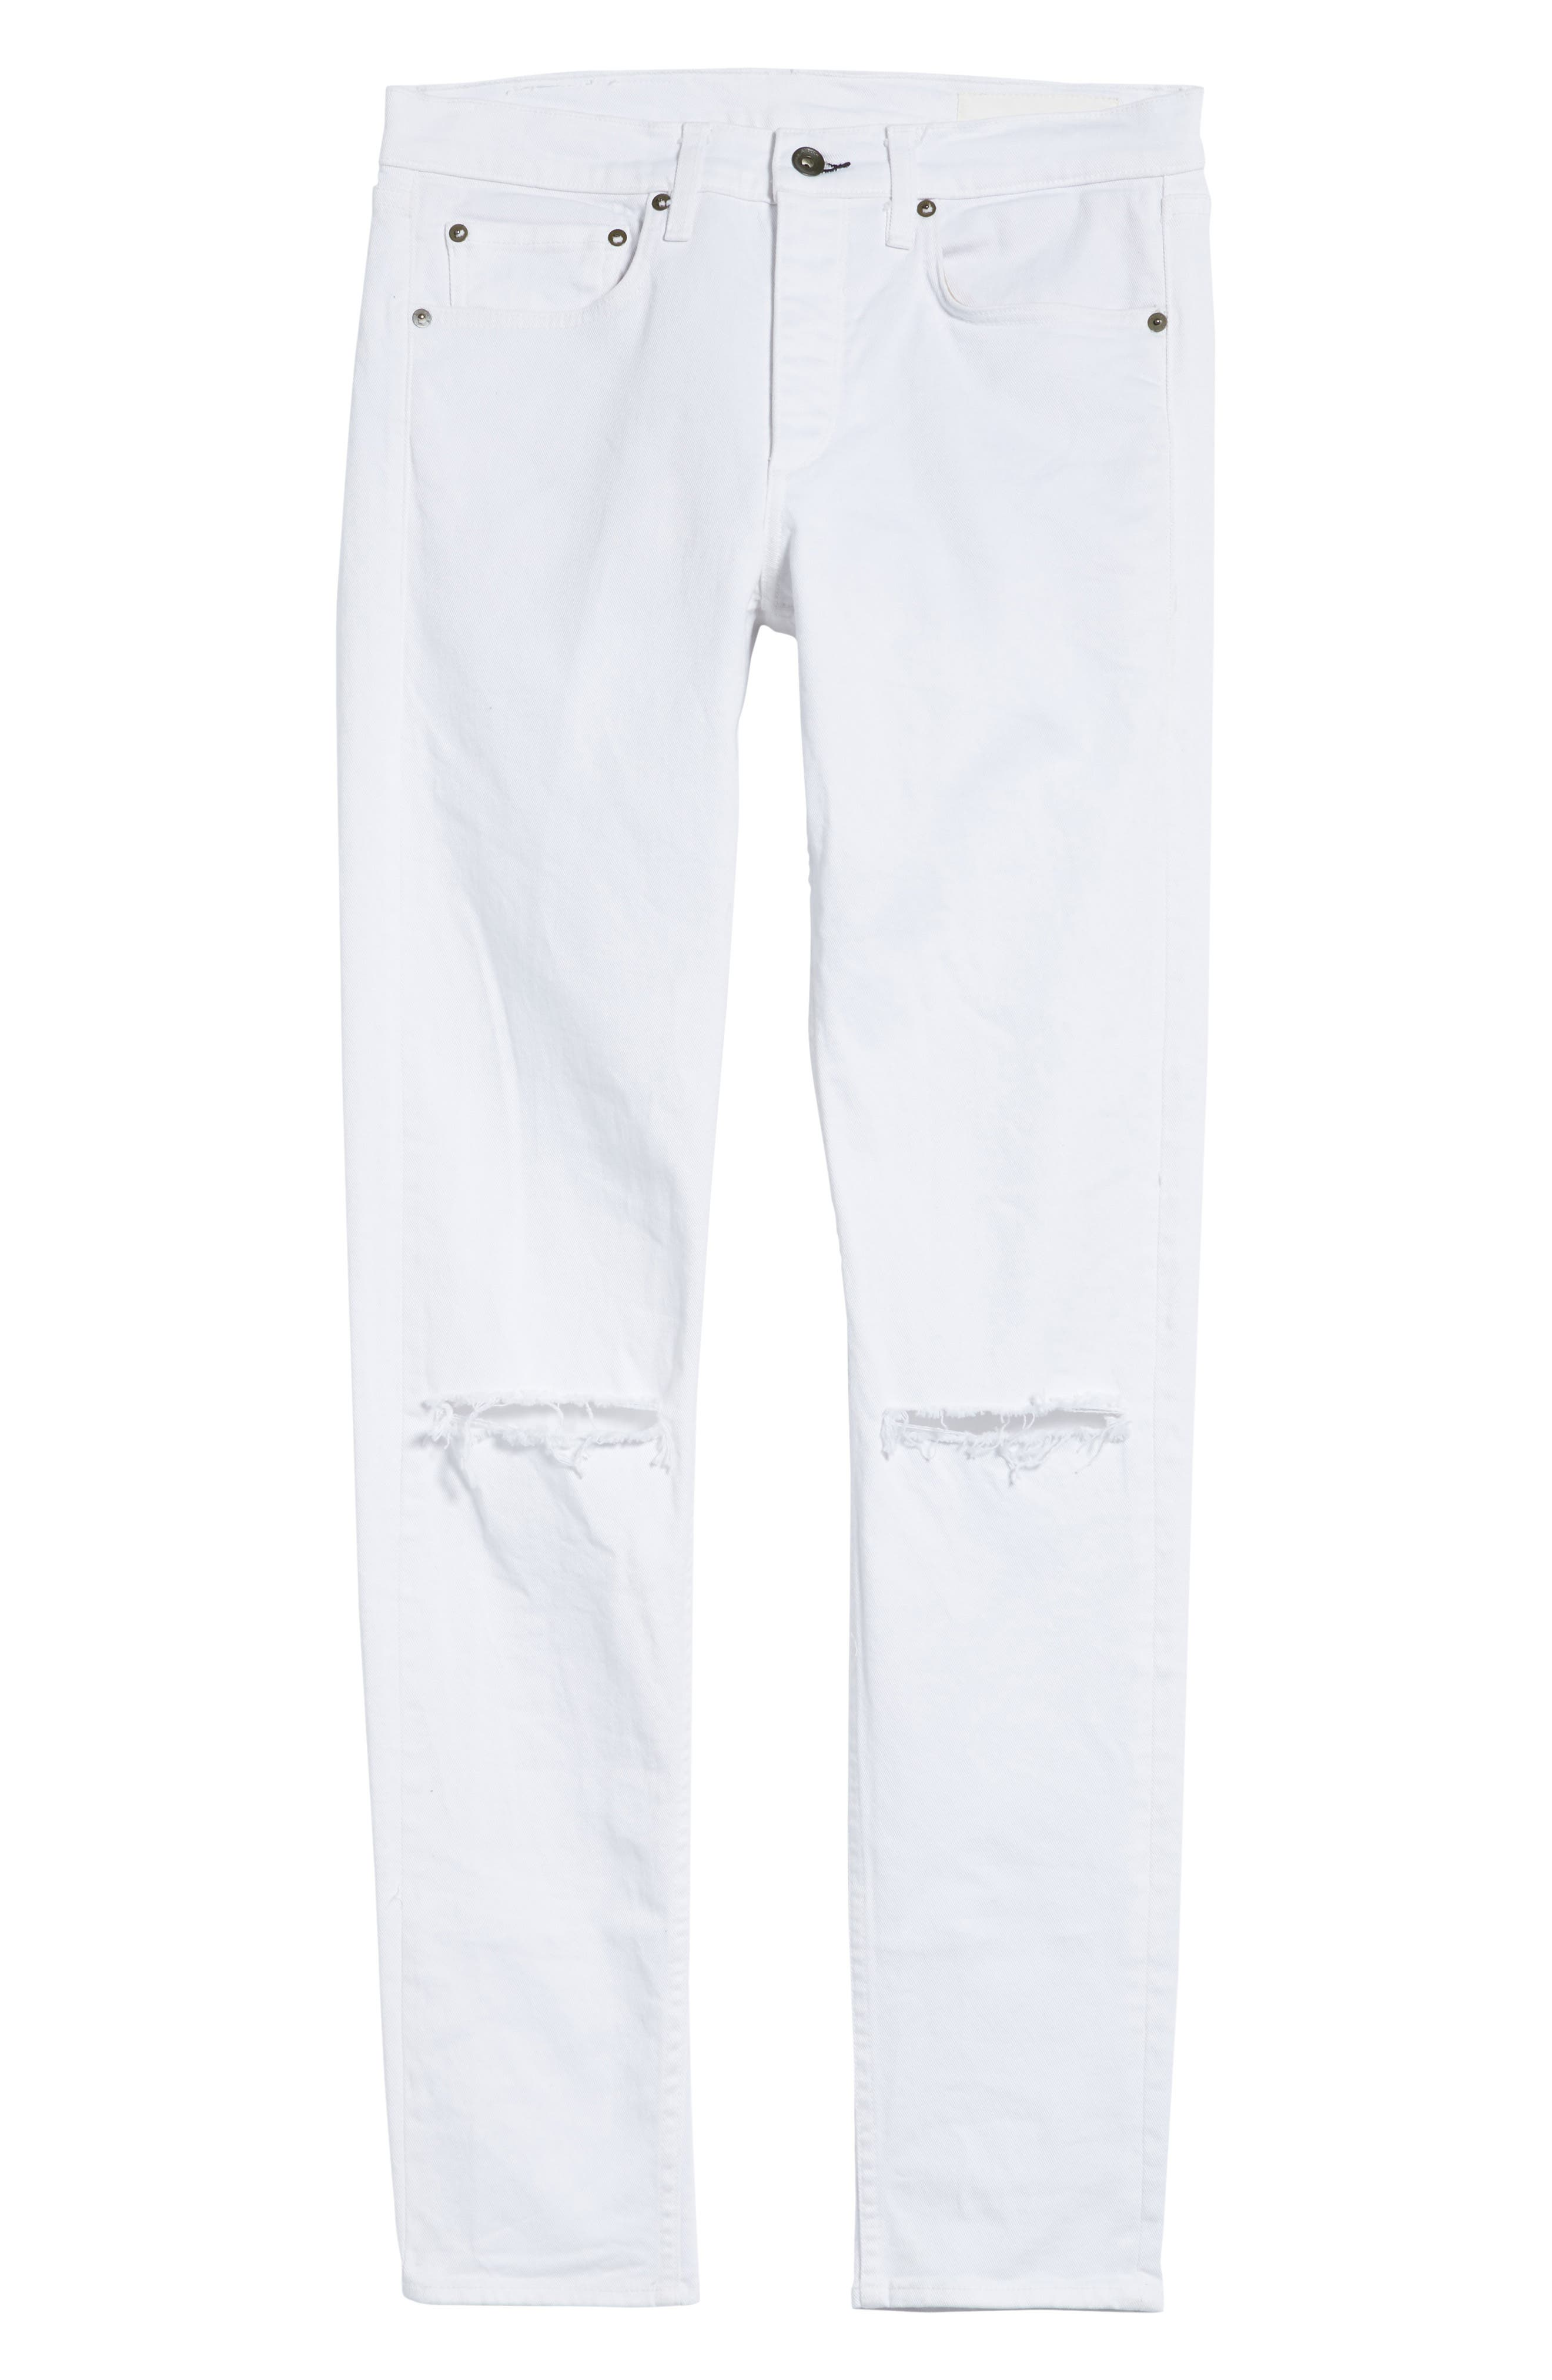 Fit 1 Skinny Fit Jeans,                             Alternate thumbnail 6, color,                             100